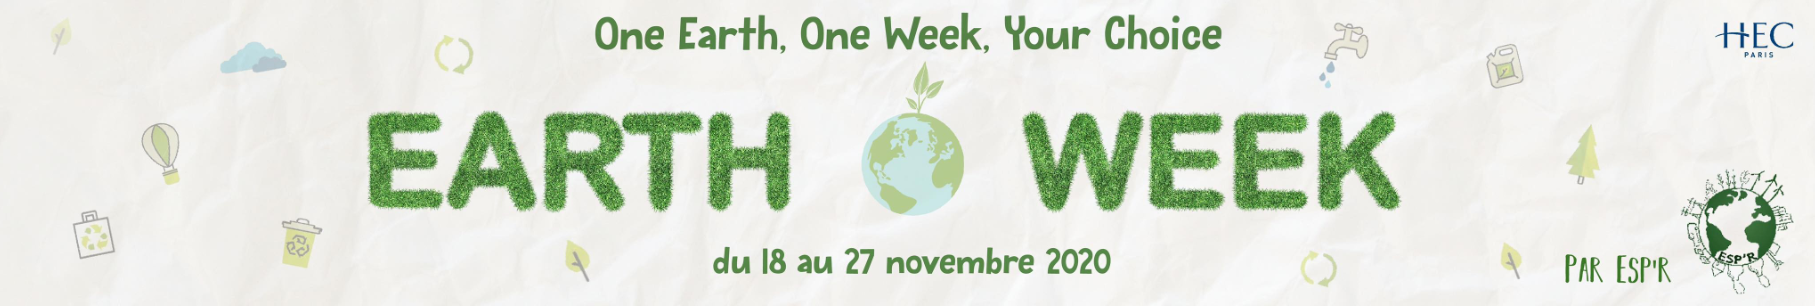 earth week banniere